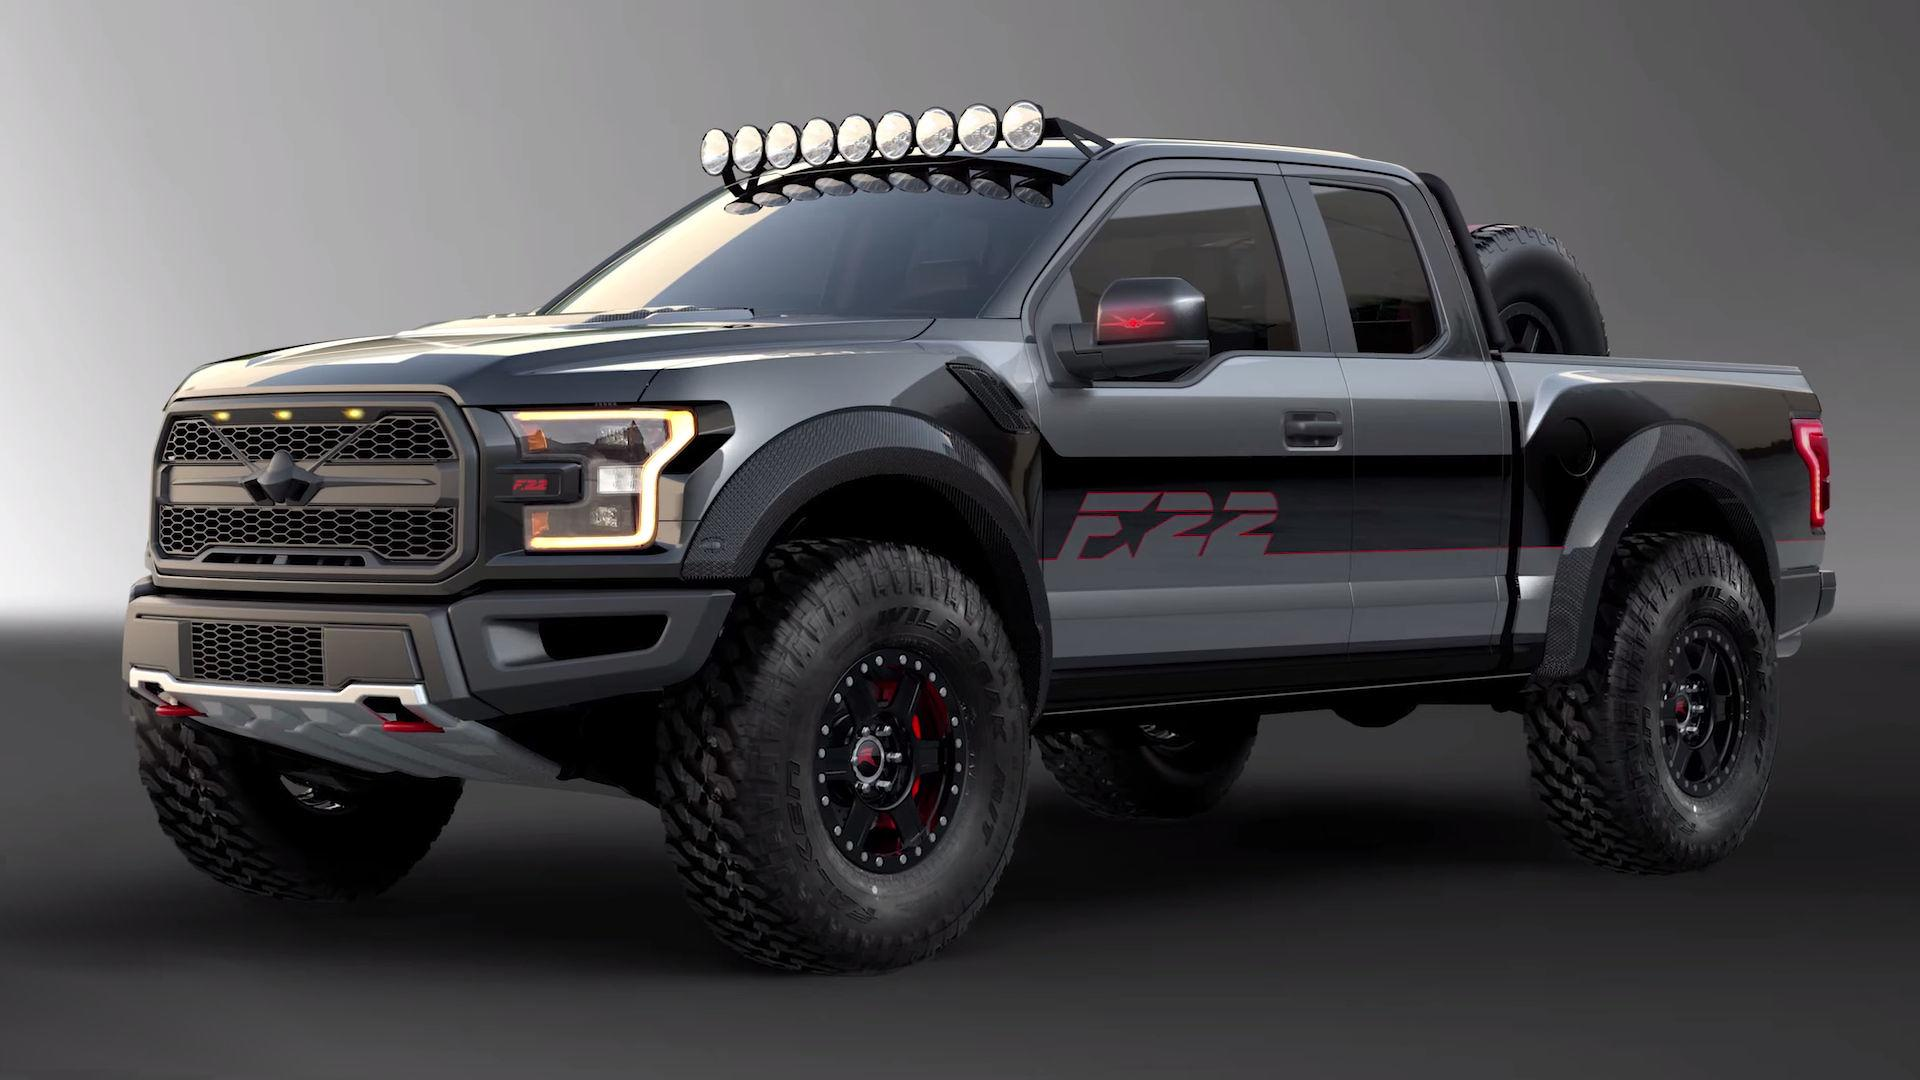 custom ford f 150 39 f22 39 raptor heading to auction news. Black Bedroom Furniture Sets. Home Design Ideas